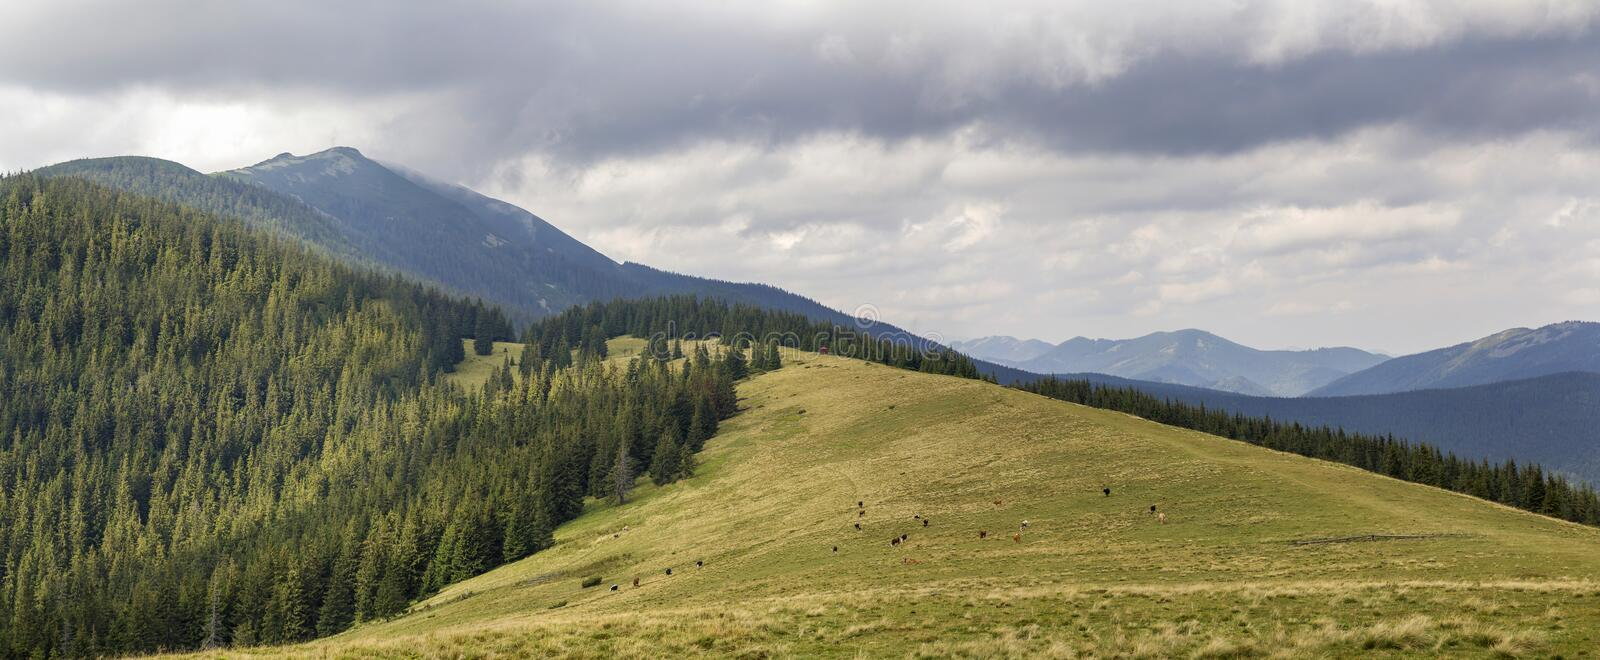 Green grassy meadow with grazing cows on background of woody mountain sunder blue sky. Beautiful summer landscape view mountains stock photo